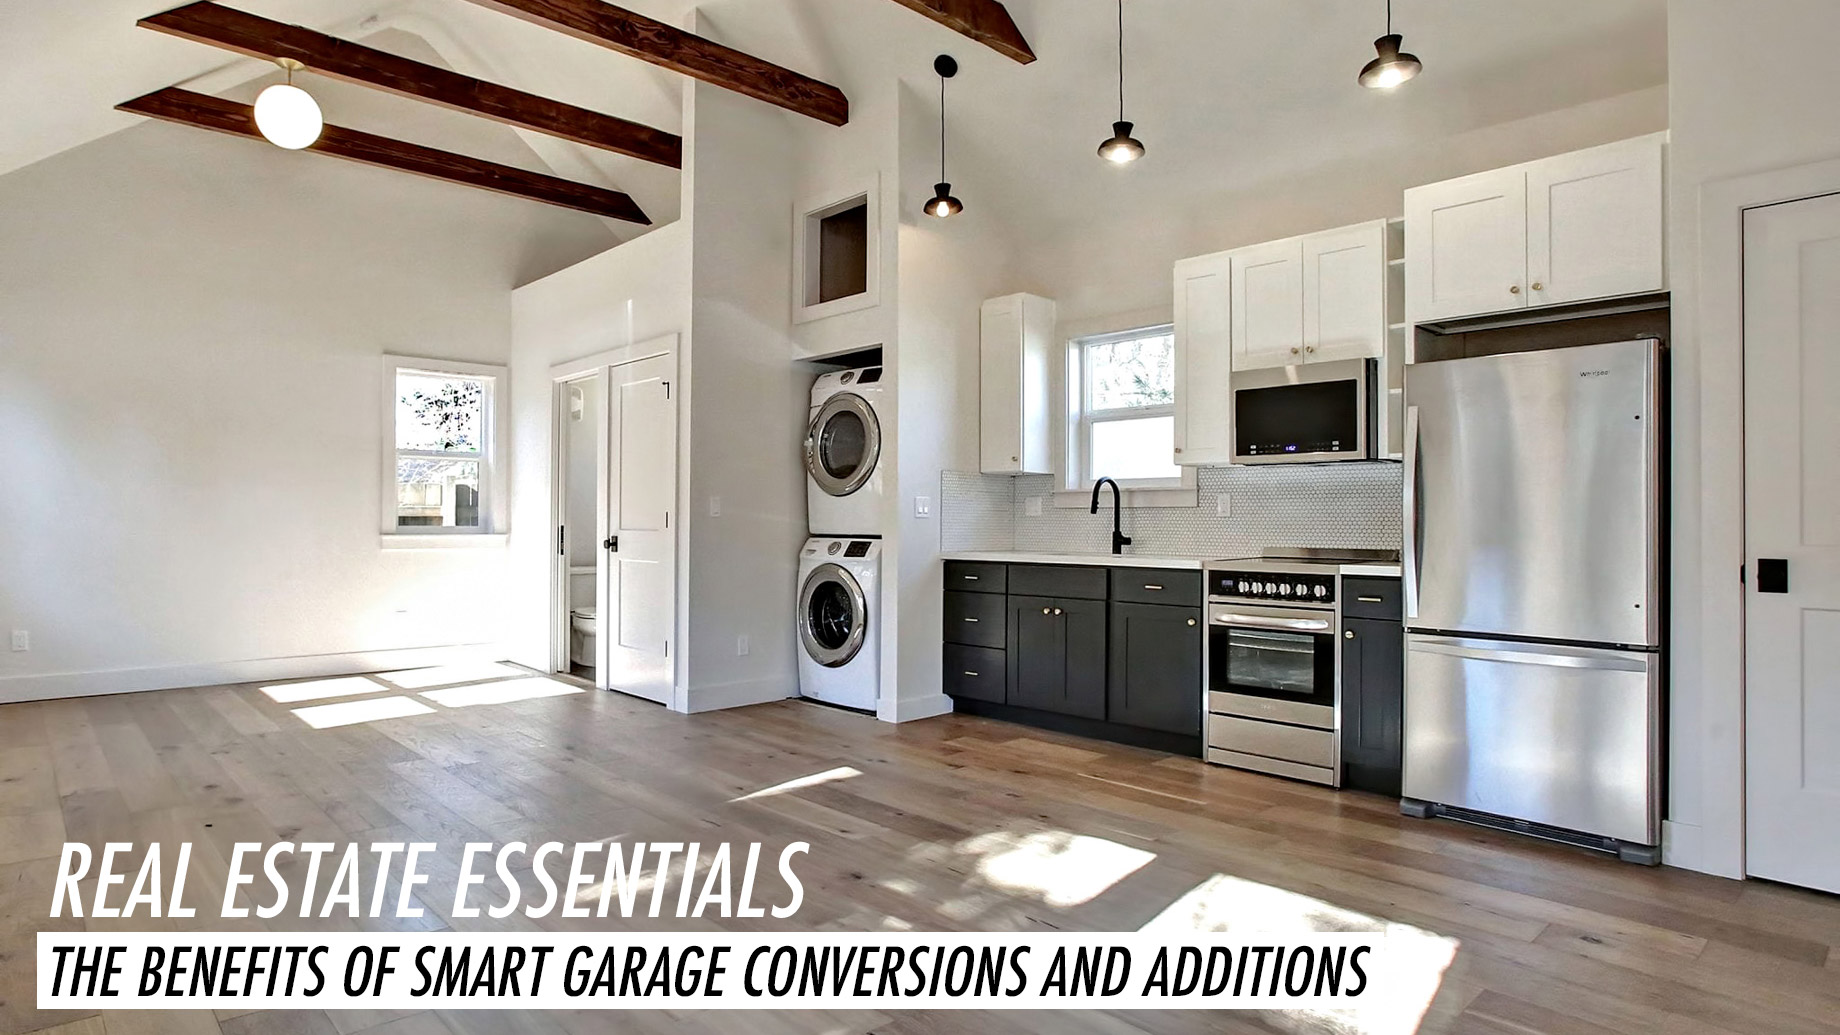 Real Estate Essentials - The Benefits of Smart Garage Conversions and Additions